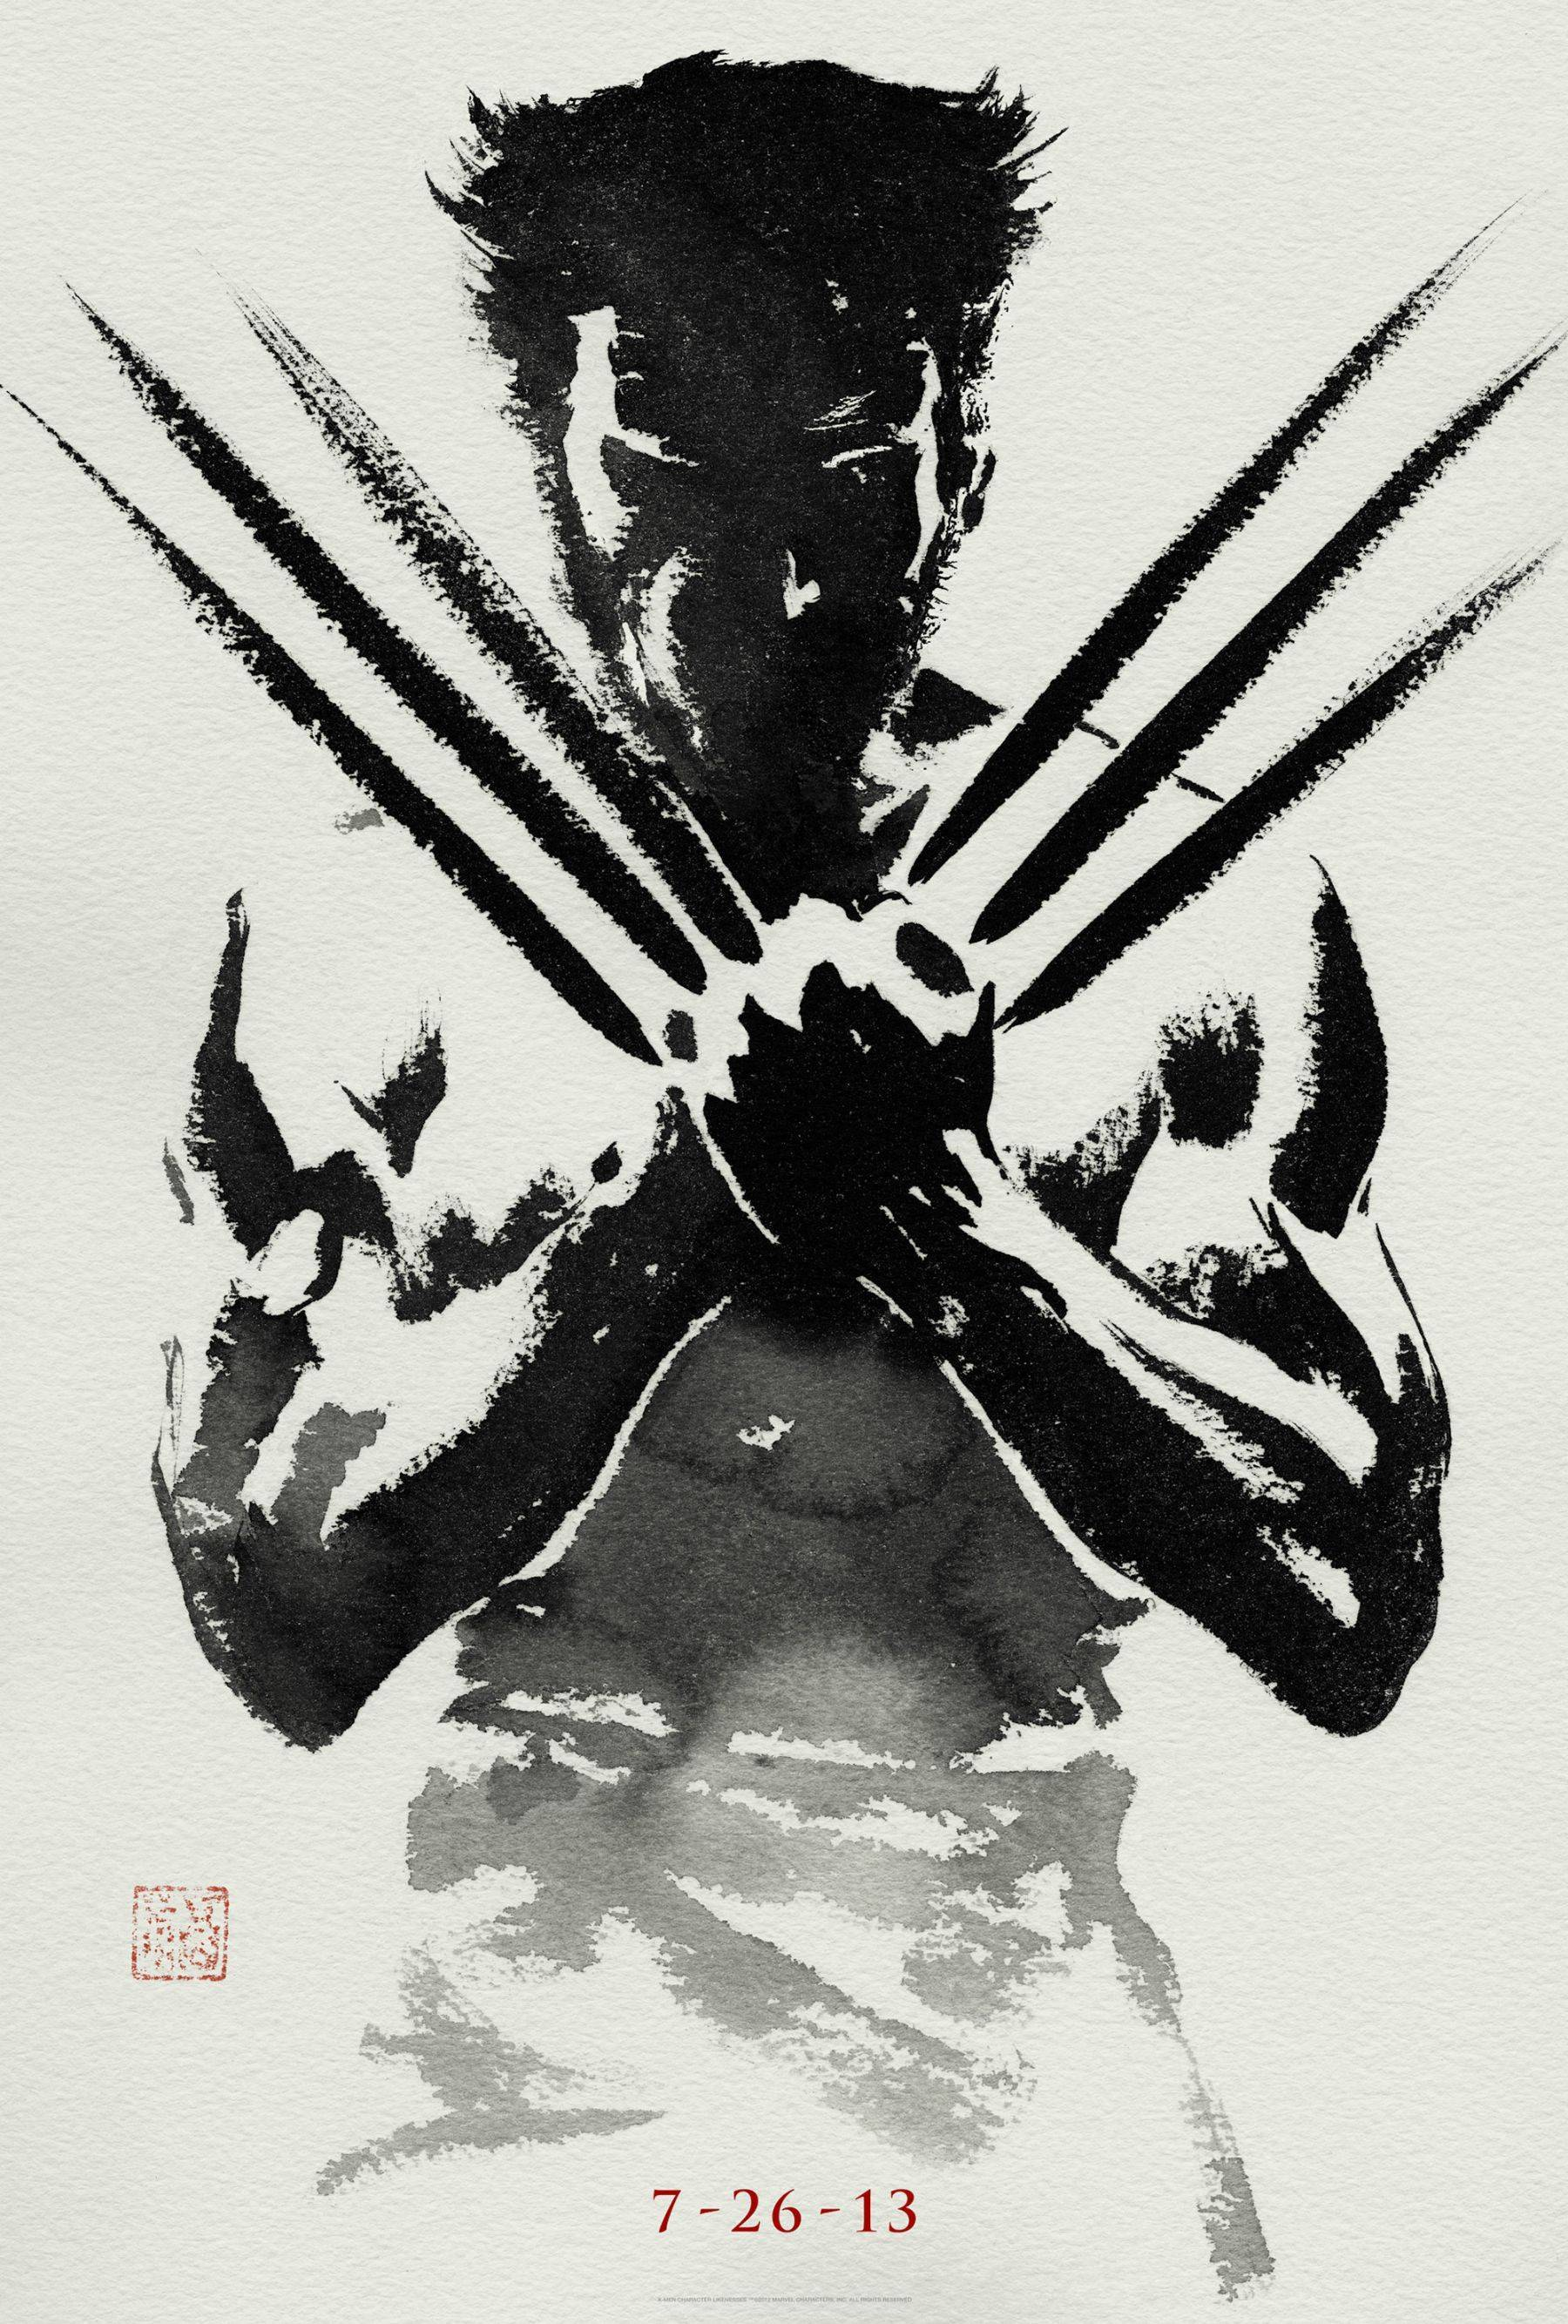 Domestic Trailer for 'The Wolverine' Released